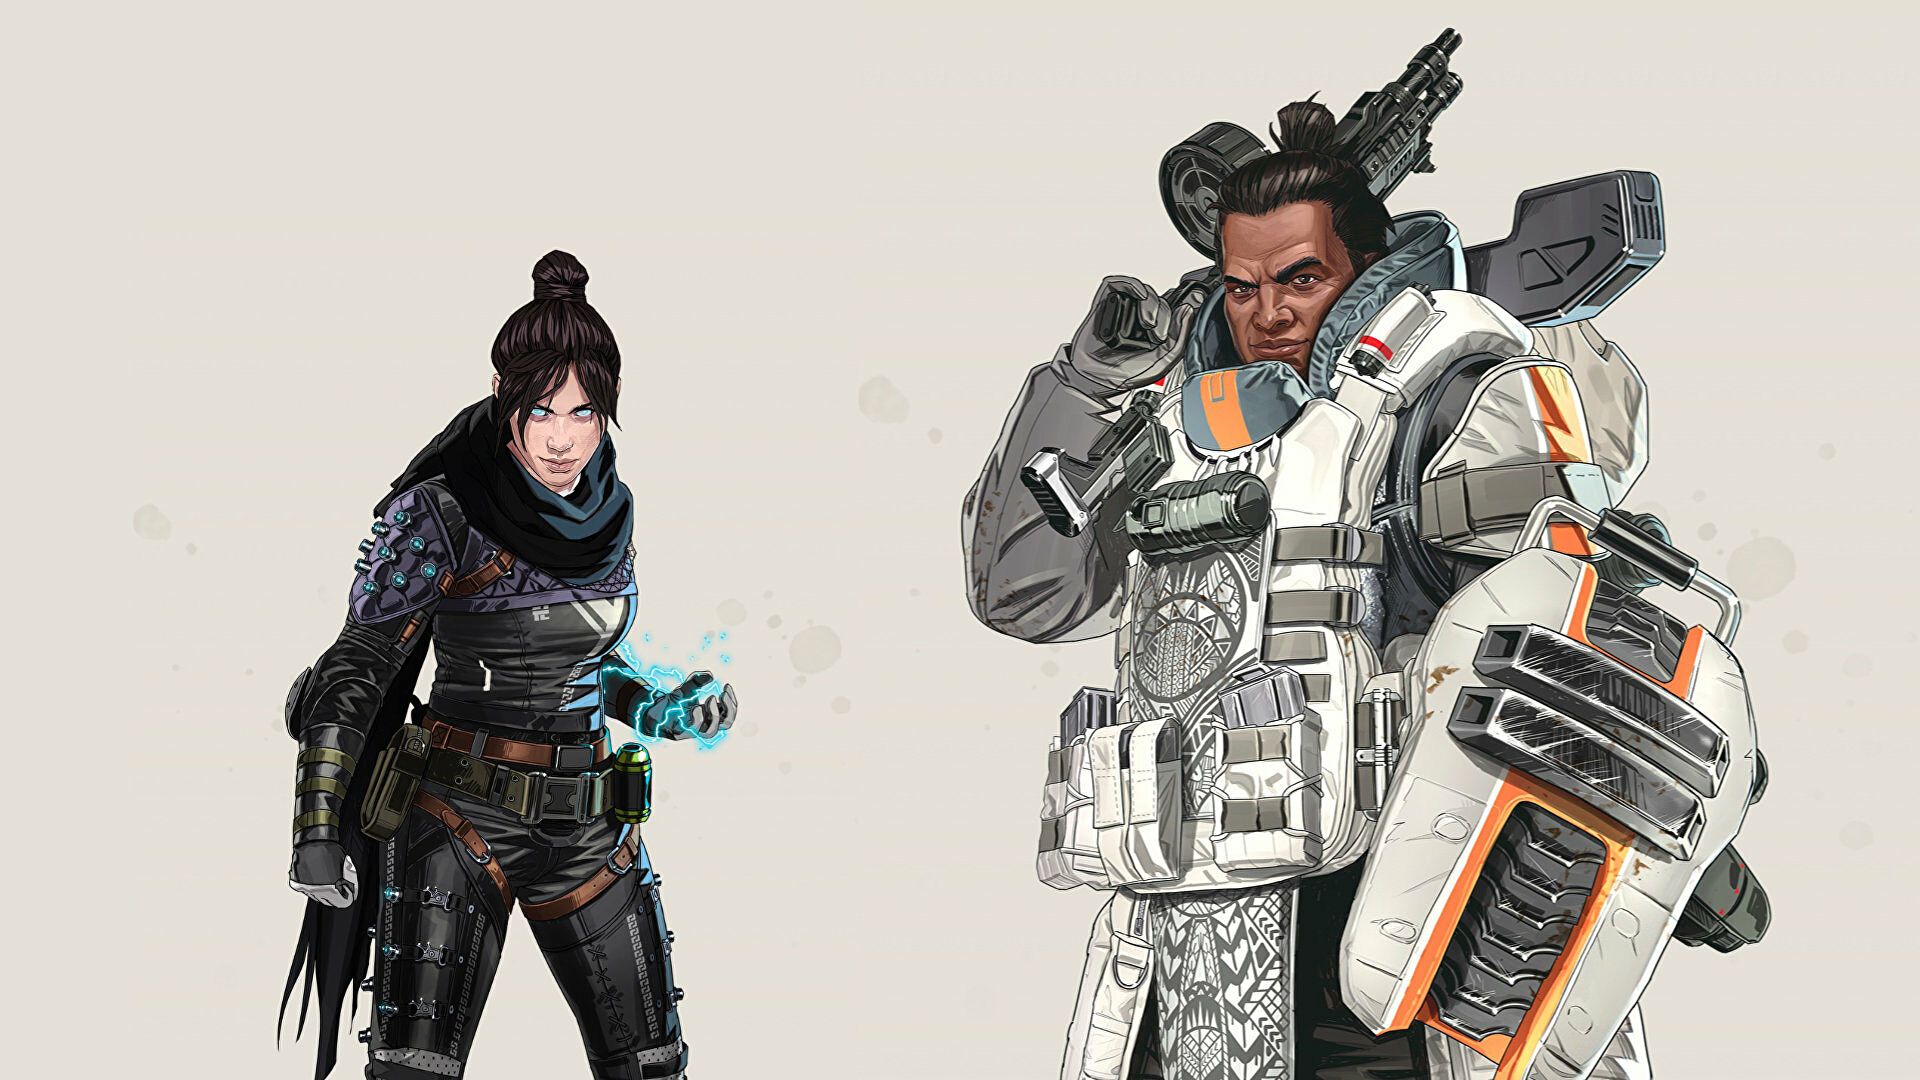 Apex Legends is now on Switch, and can cross-play with PC